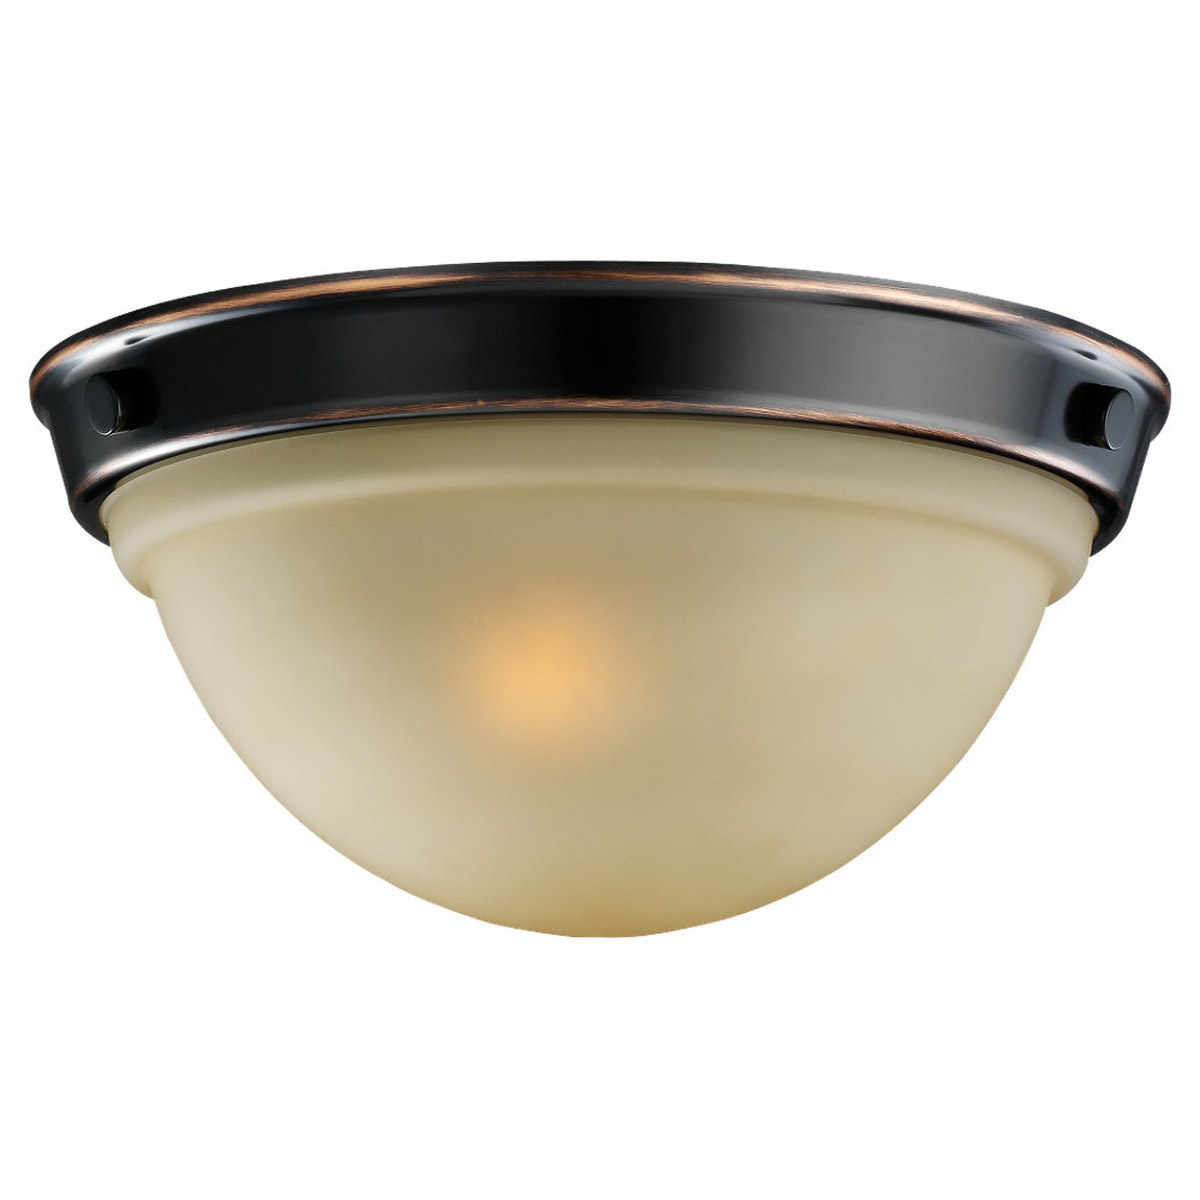 Sea Gull Lighting Sydney 2 Light Flush Mount in Vintage Brown 75745-862 photo